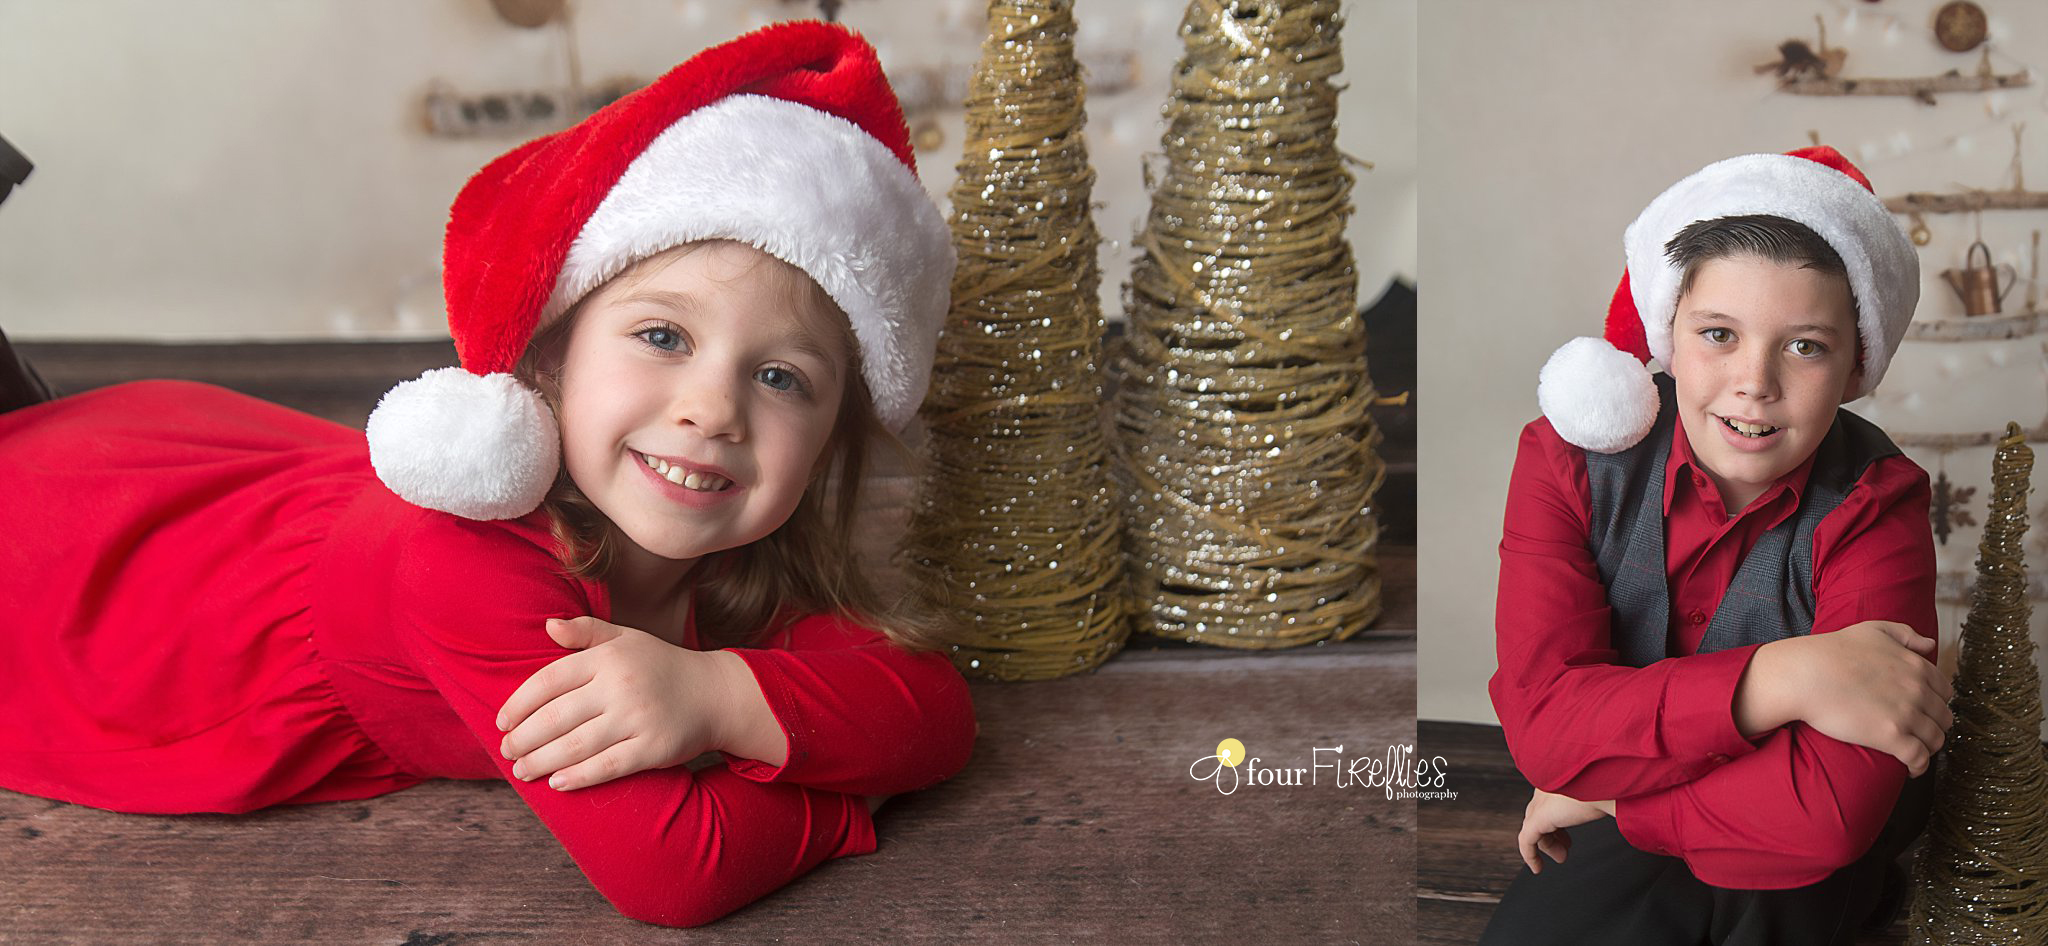 st-louis-photography-studio-kids-in-red -with-rustic-christmas-trees.jpg